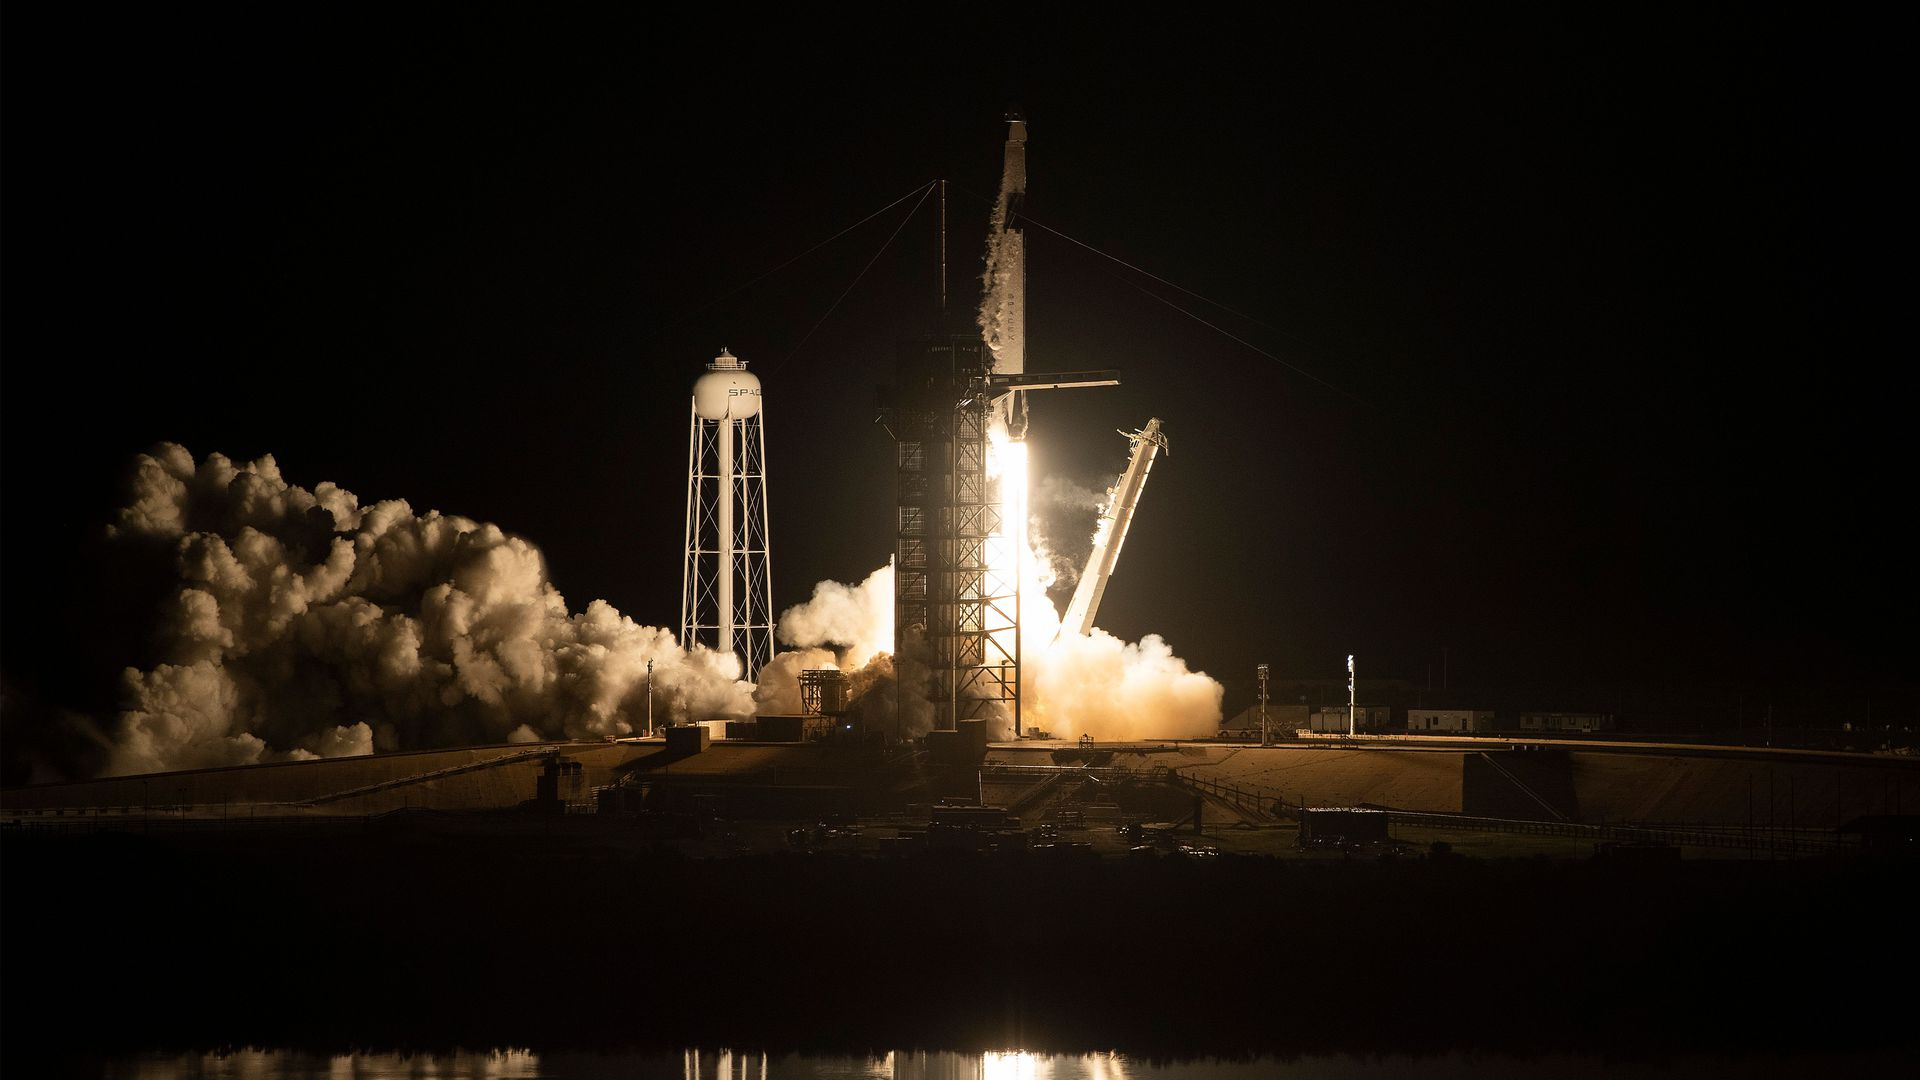 SpaceX is raising another $500 million